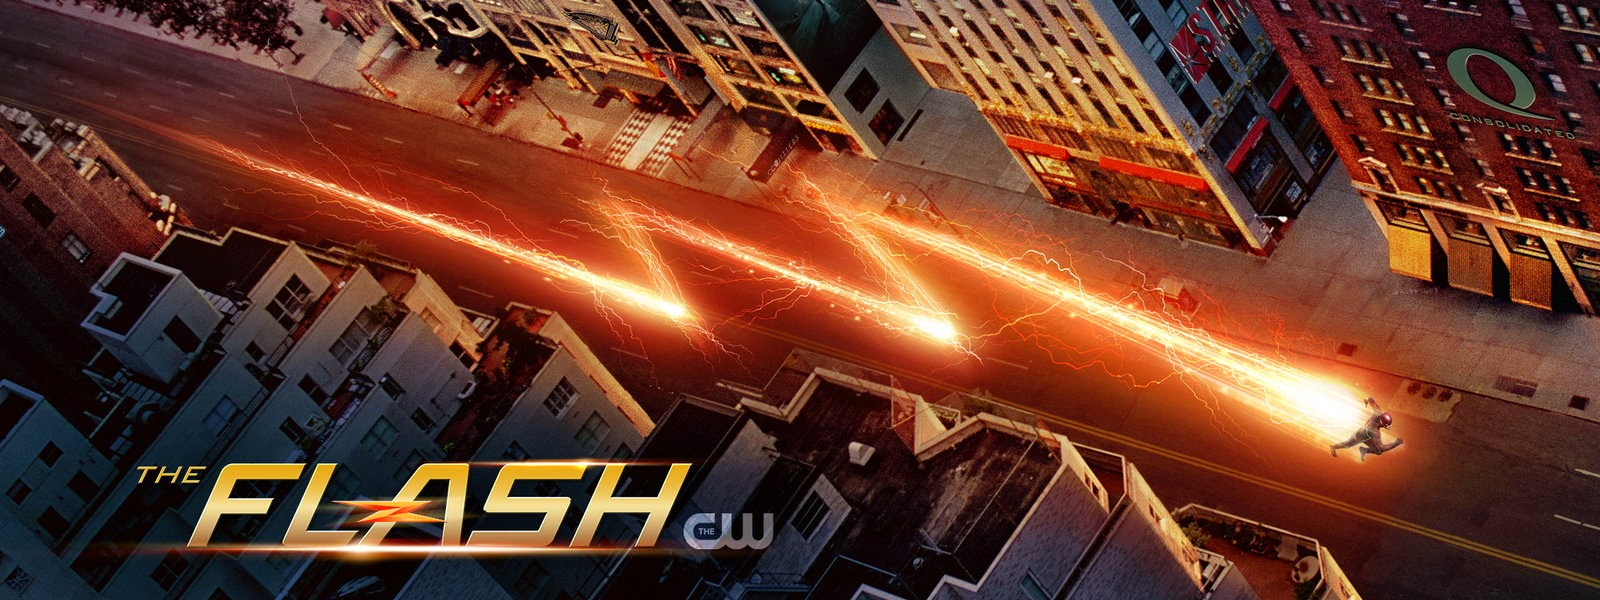 The Flash on the CW is the best new show of 2014